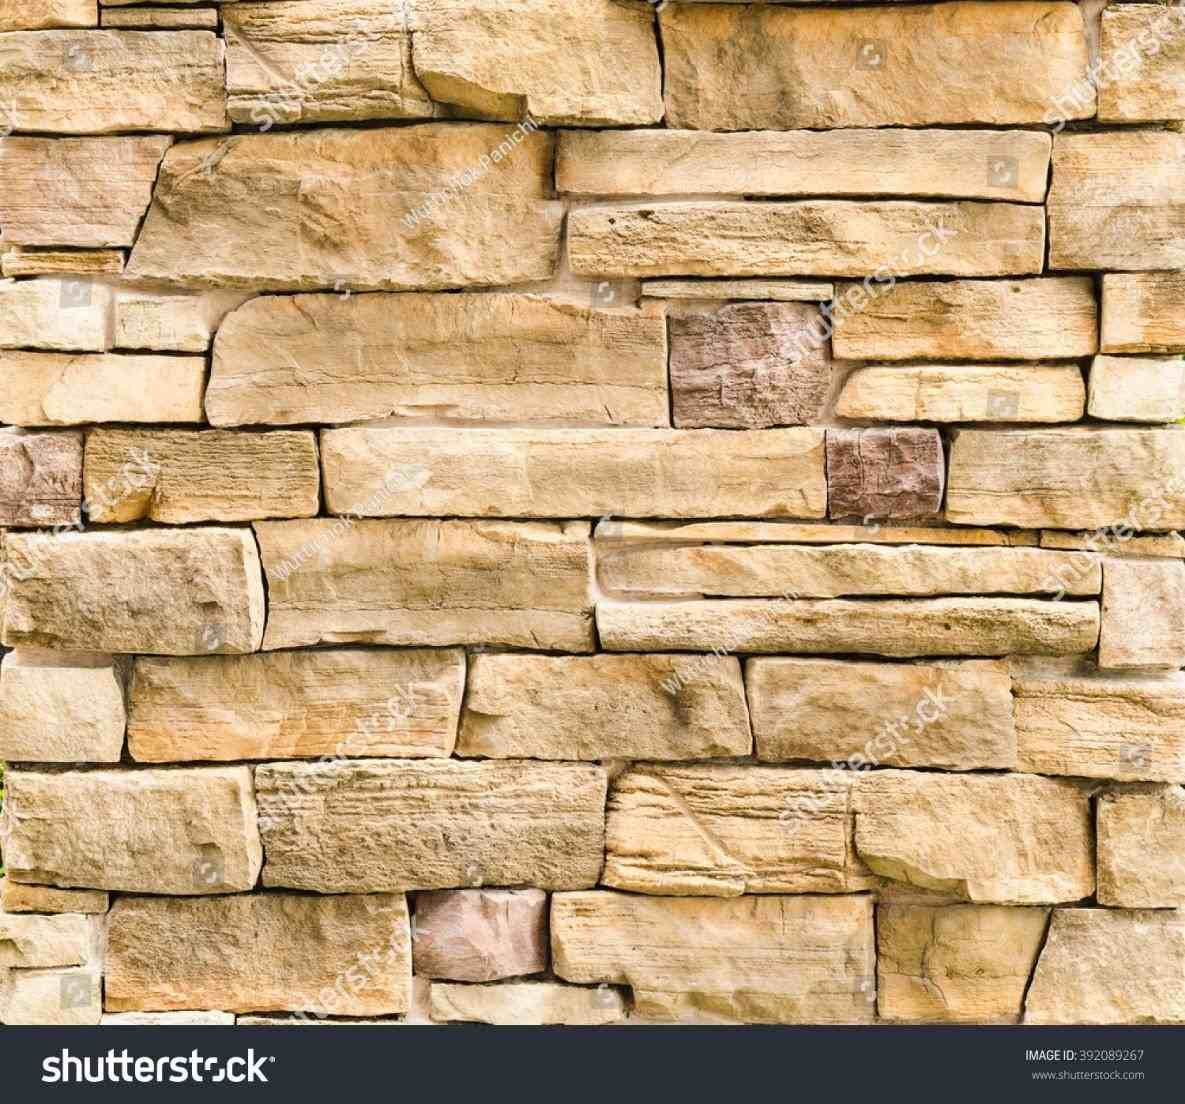 New Post decorative stone wall tiles texture visit Bobayule Trending ...